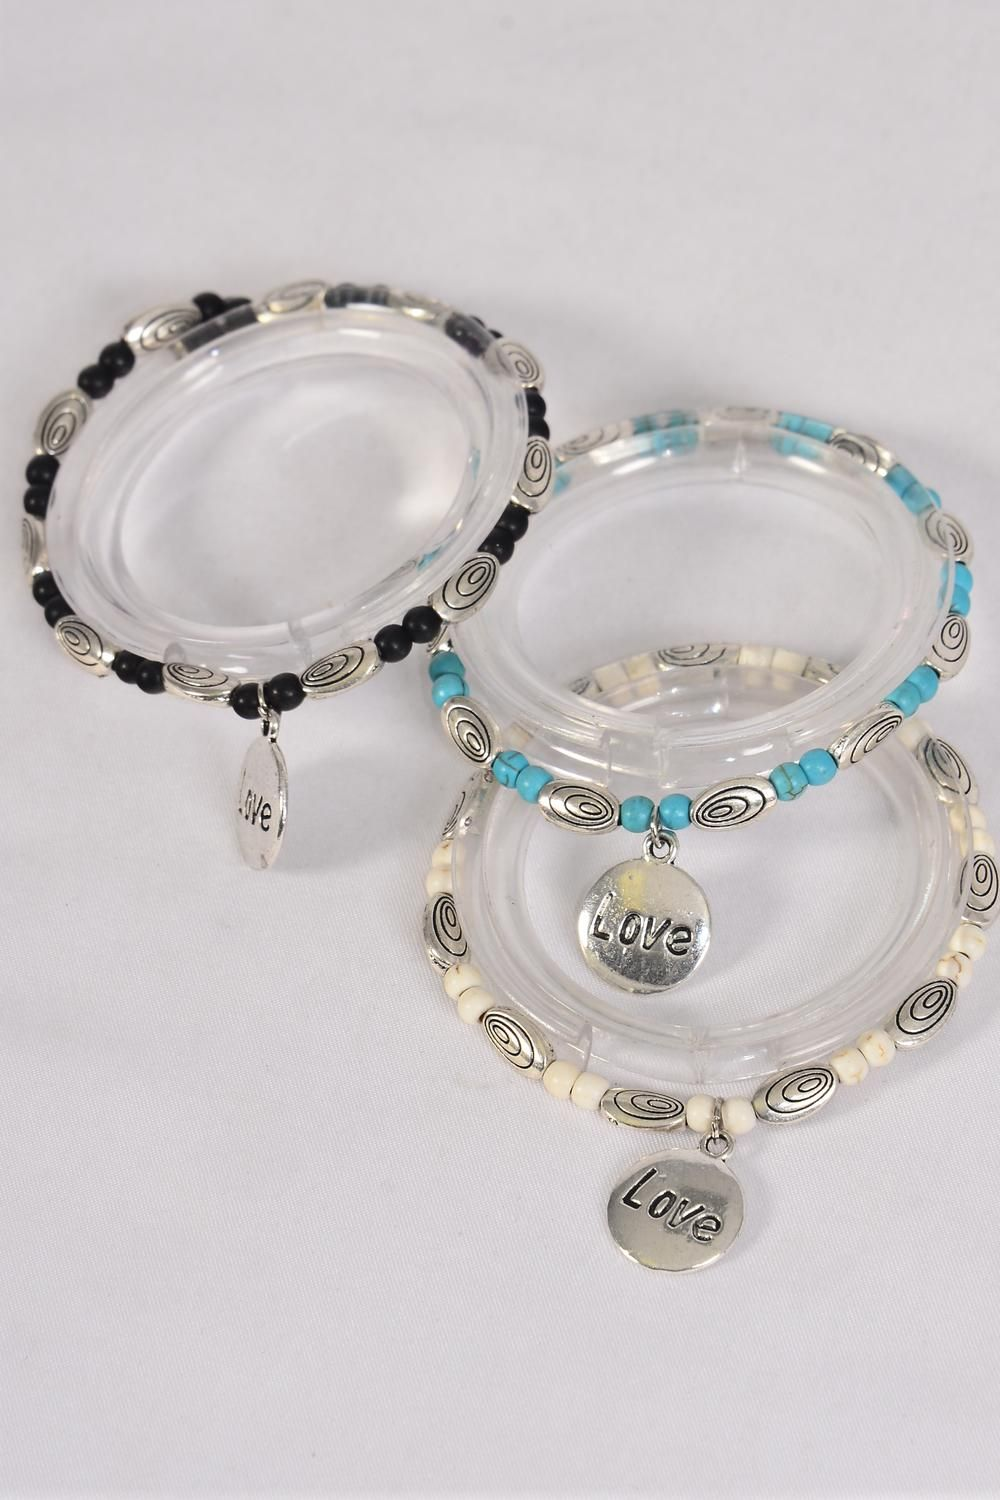 Bracelet Semiprecious Stone Love Charm Stretchy/DZ **Stretch**  Black,4 Ivory,4 Turquoise,3 Color Asst,Hang Tag & Opp Bag & UPC Code